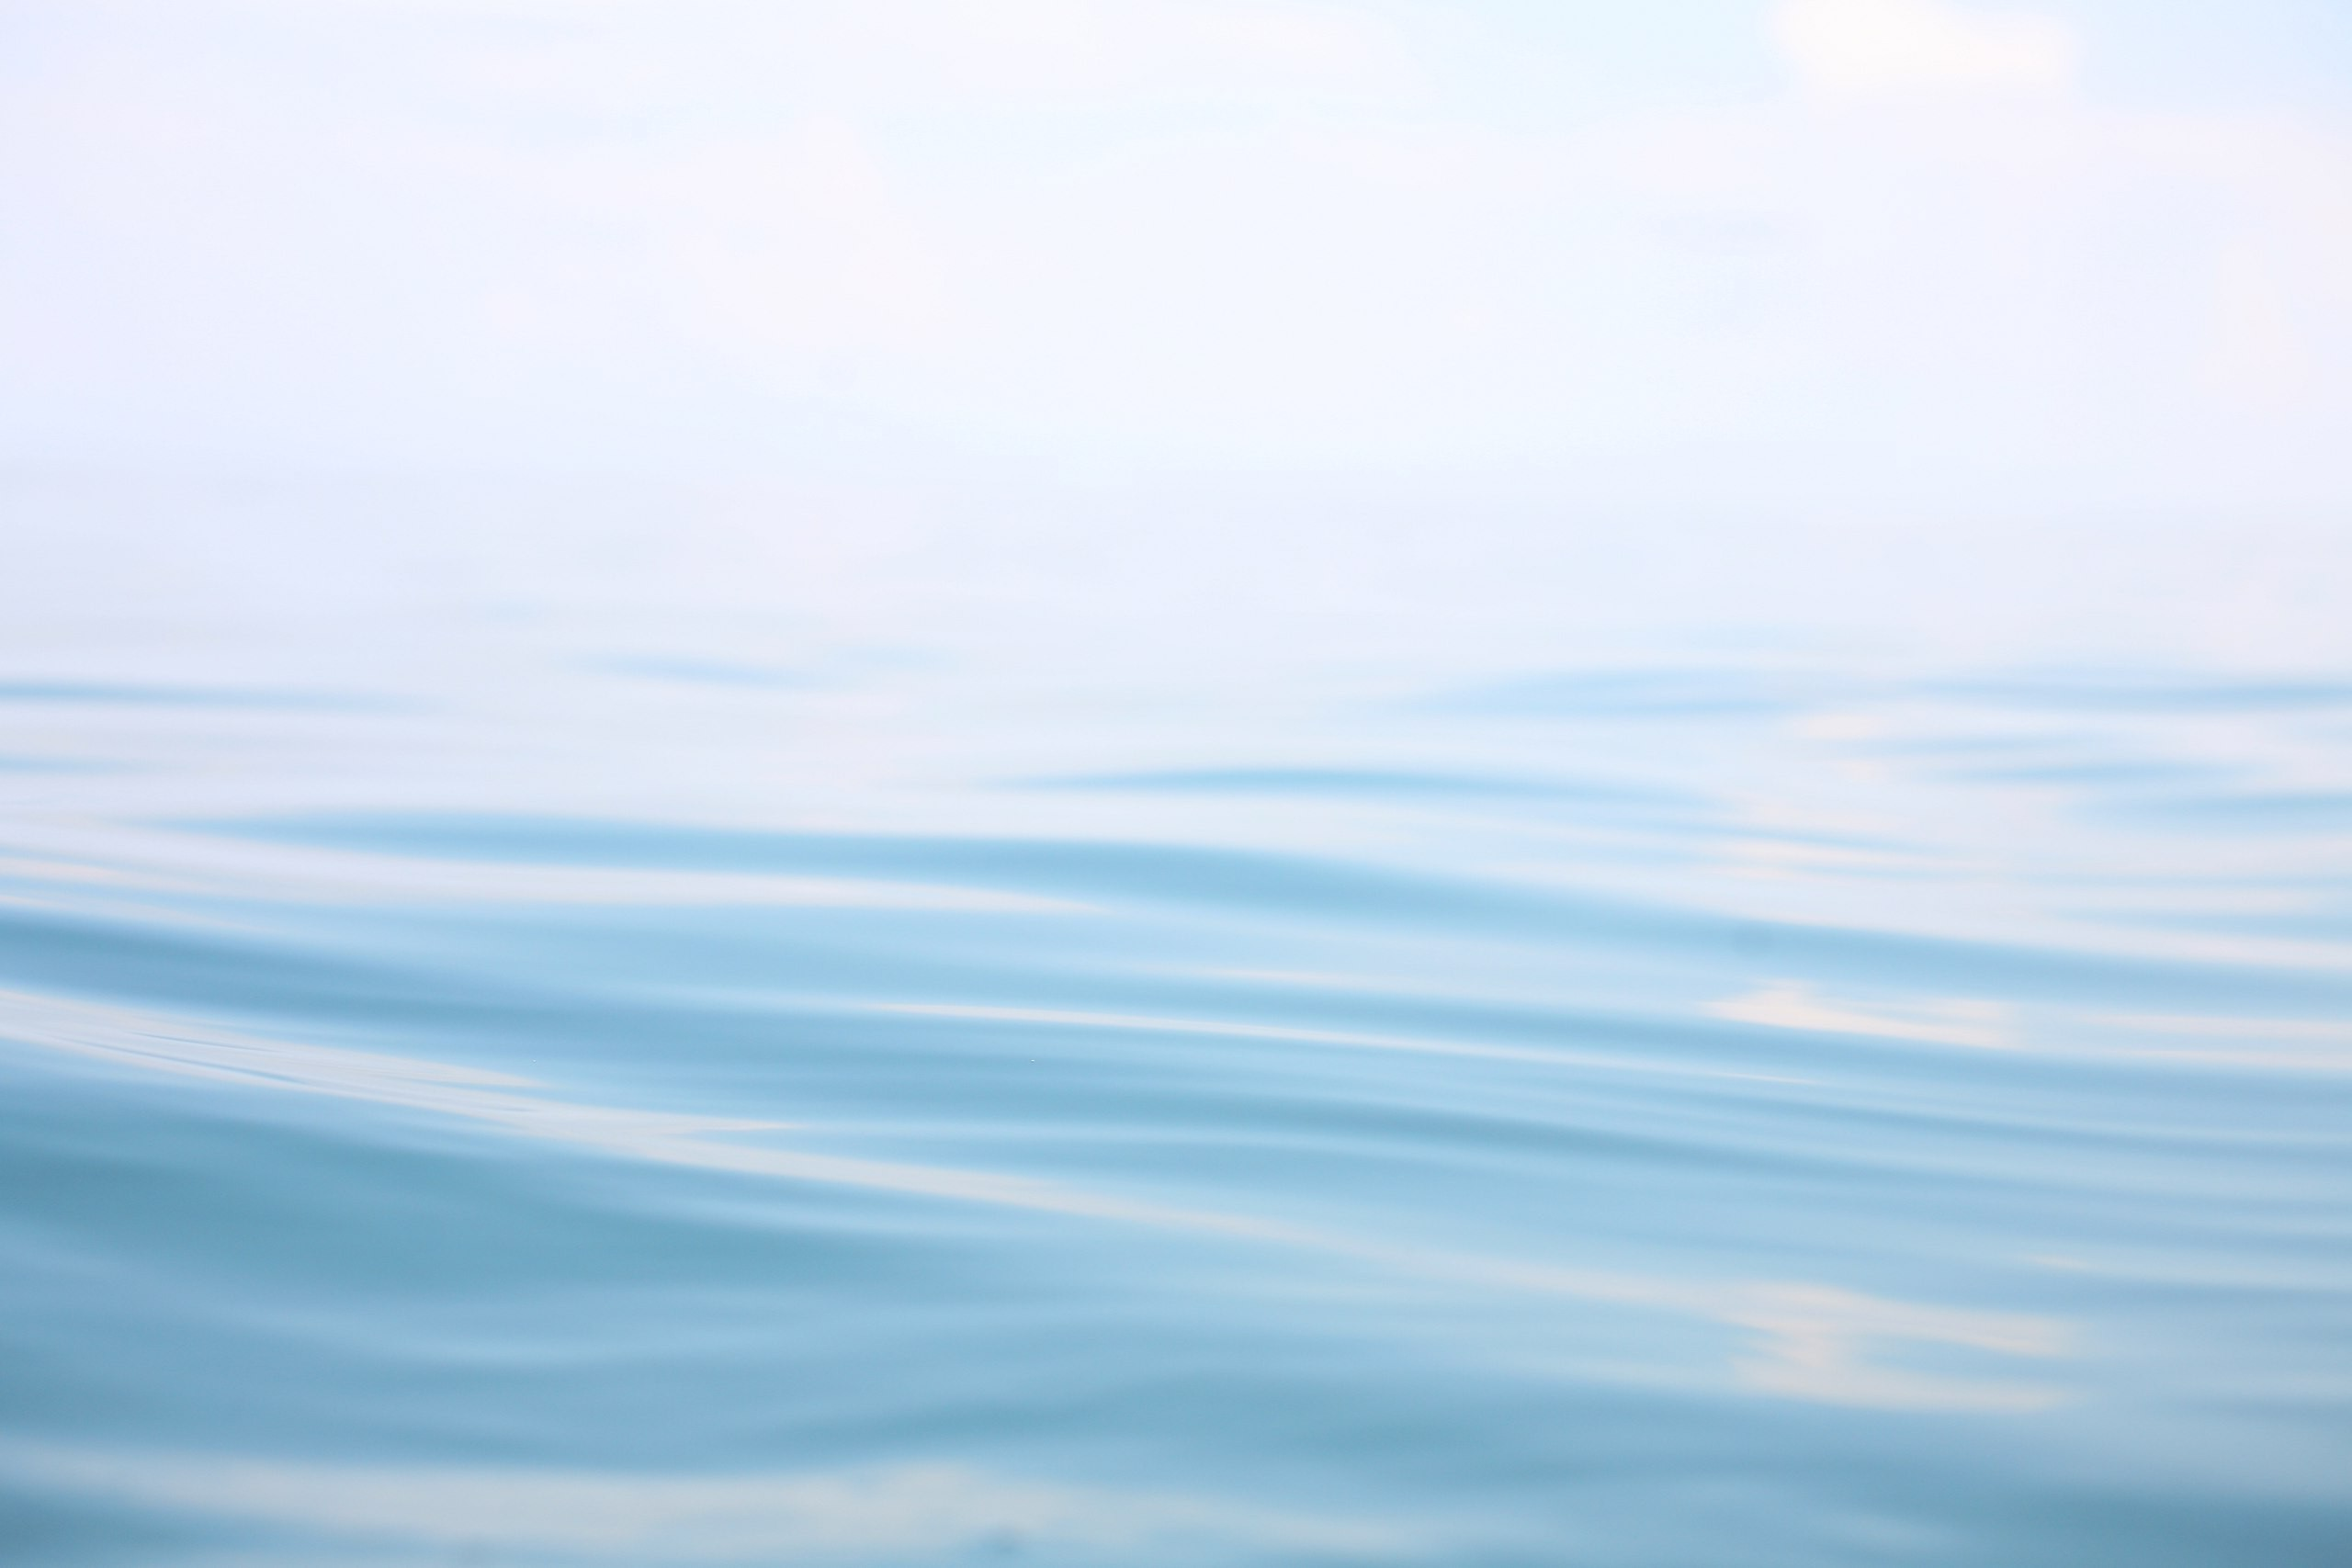 water, Sea, Calm, Nature Wallpapers HD / Desktop and Mobile Backgrounds